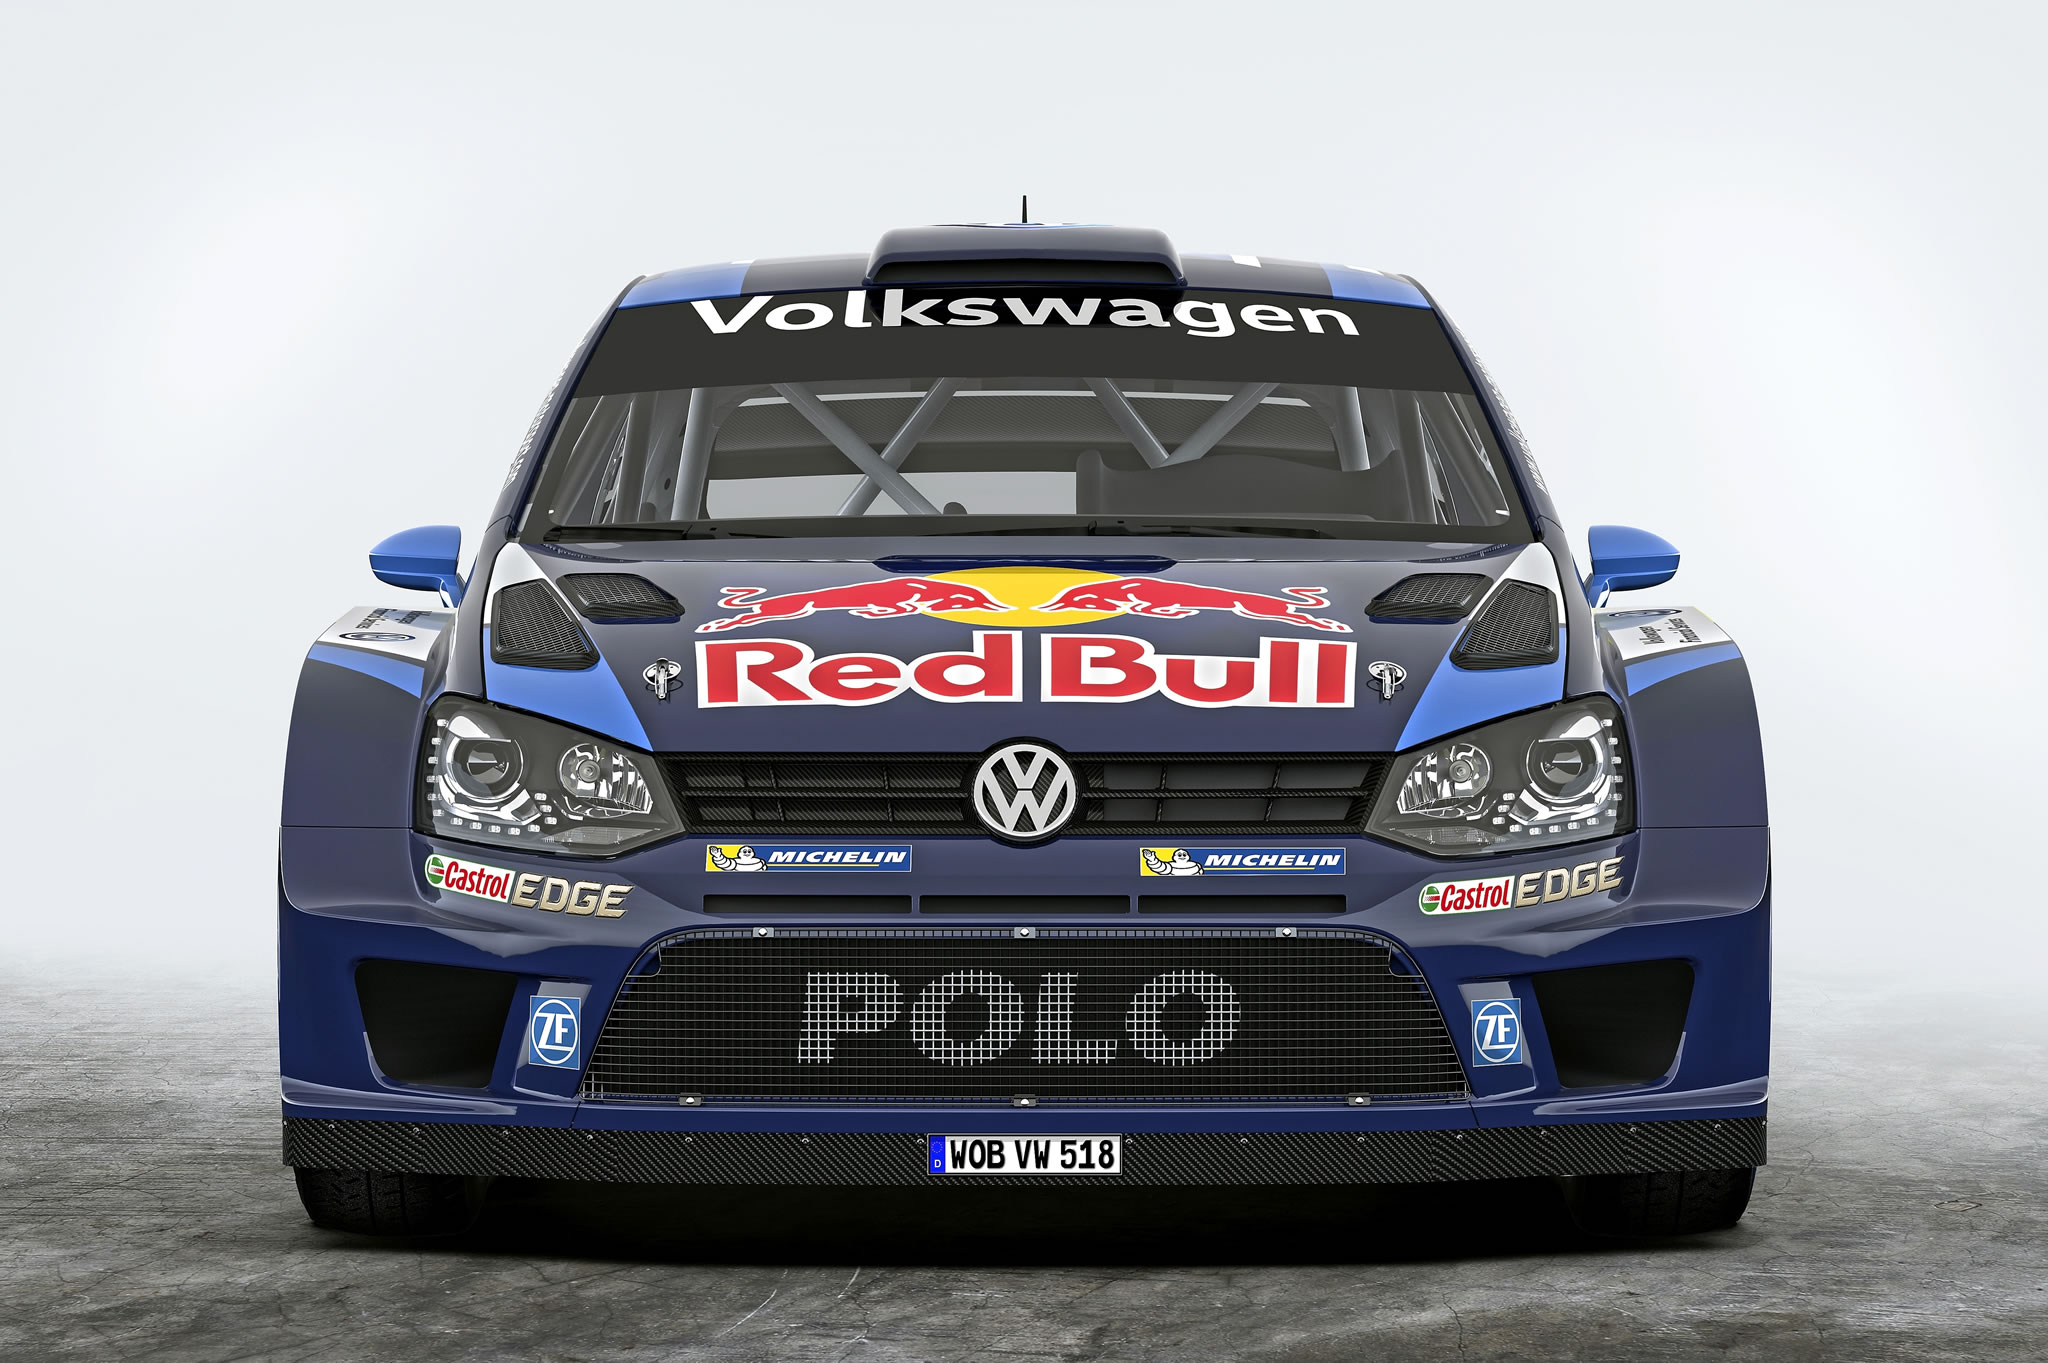 2015 volkswagen polo r wrc rally car front photo studio shot size 2048 x 1363 nr 2 12. Black Bedroom Furniture Sets. Home Design Ideas